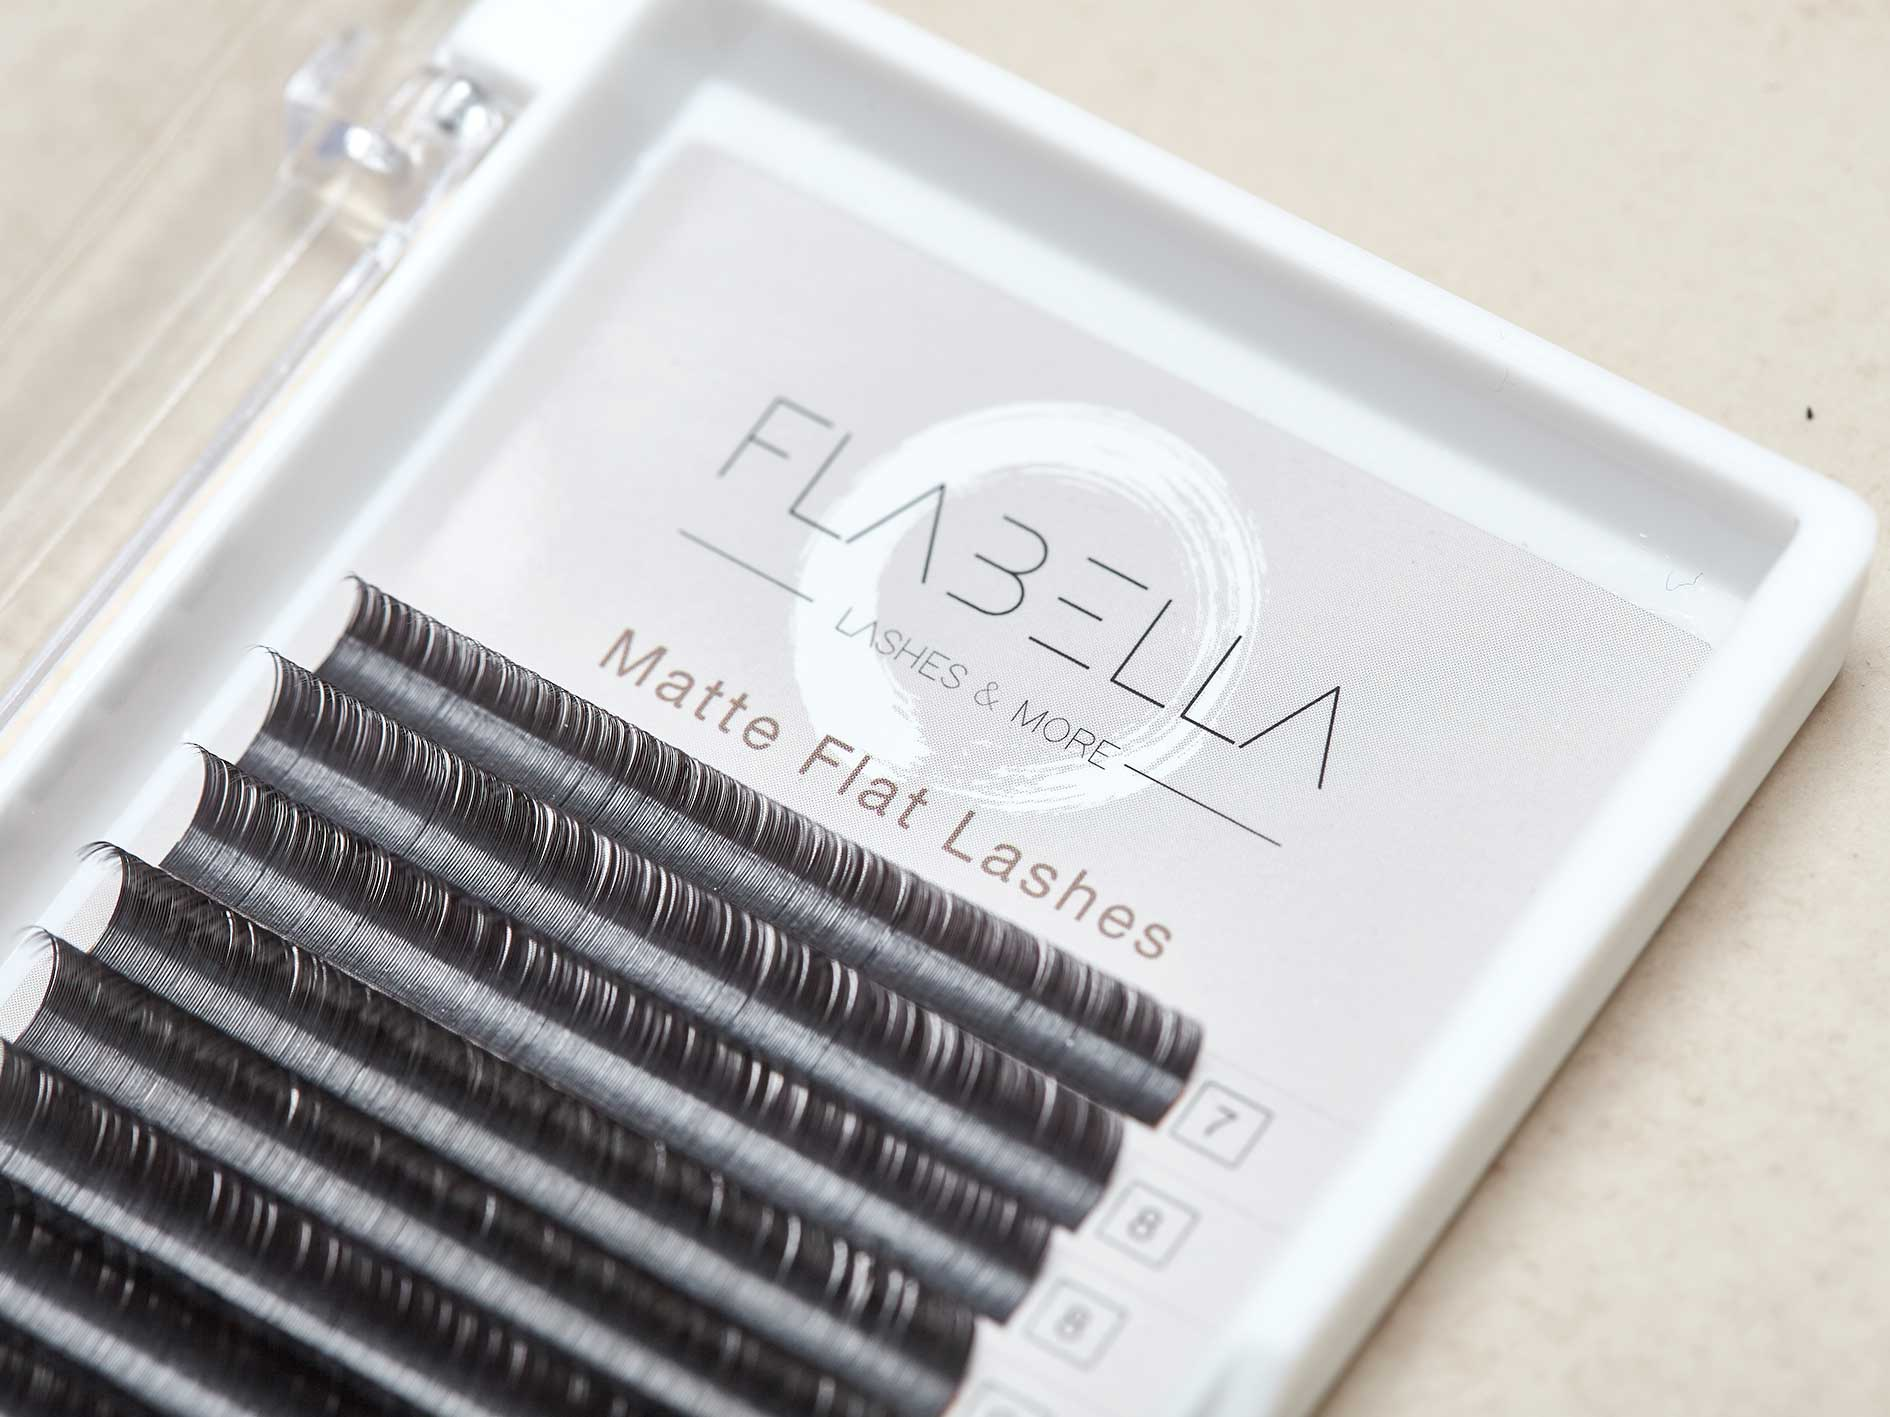 Flabella_Wimpernprodukte